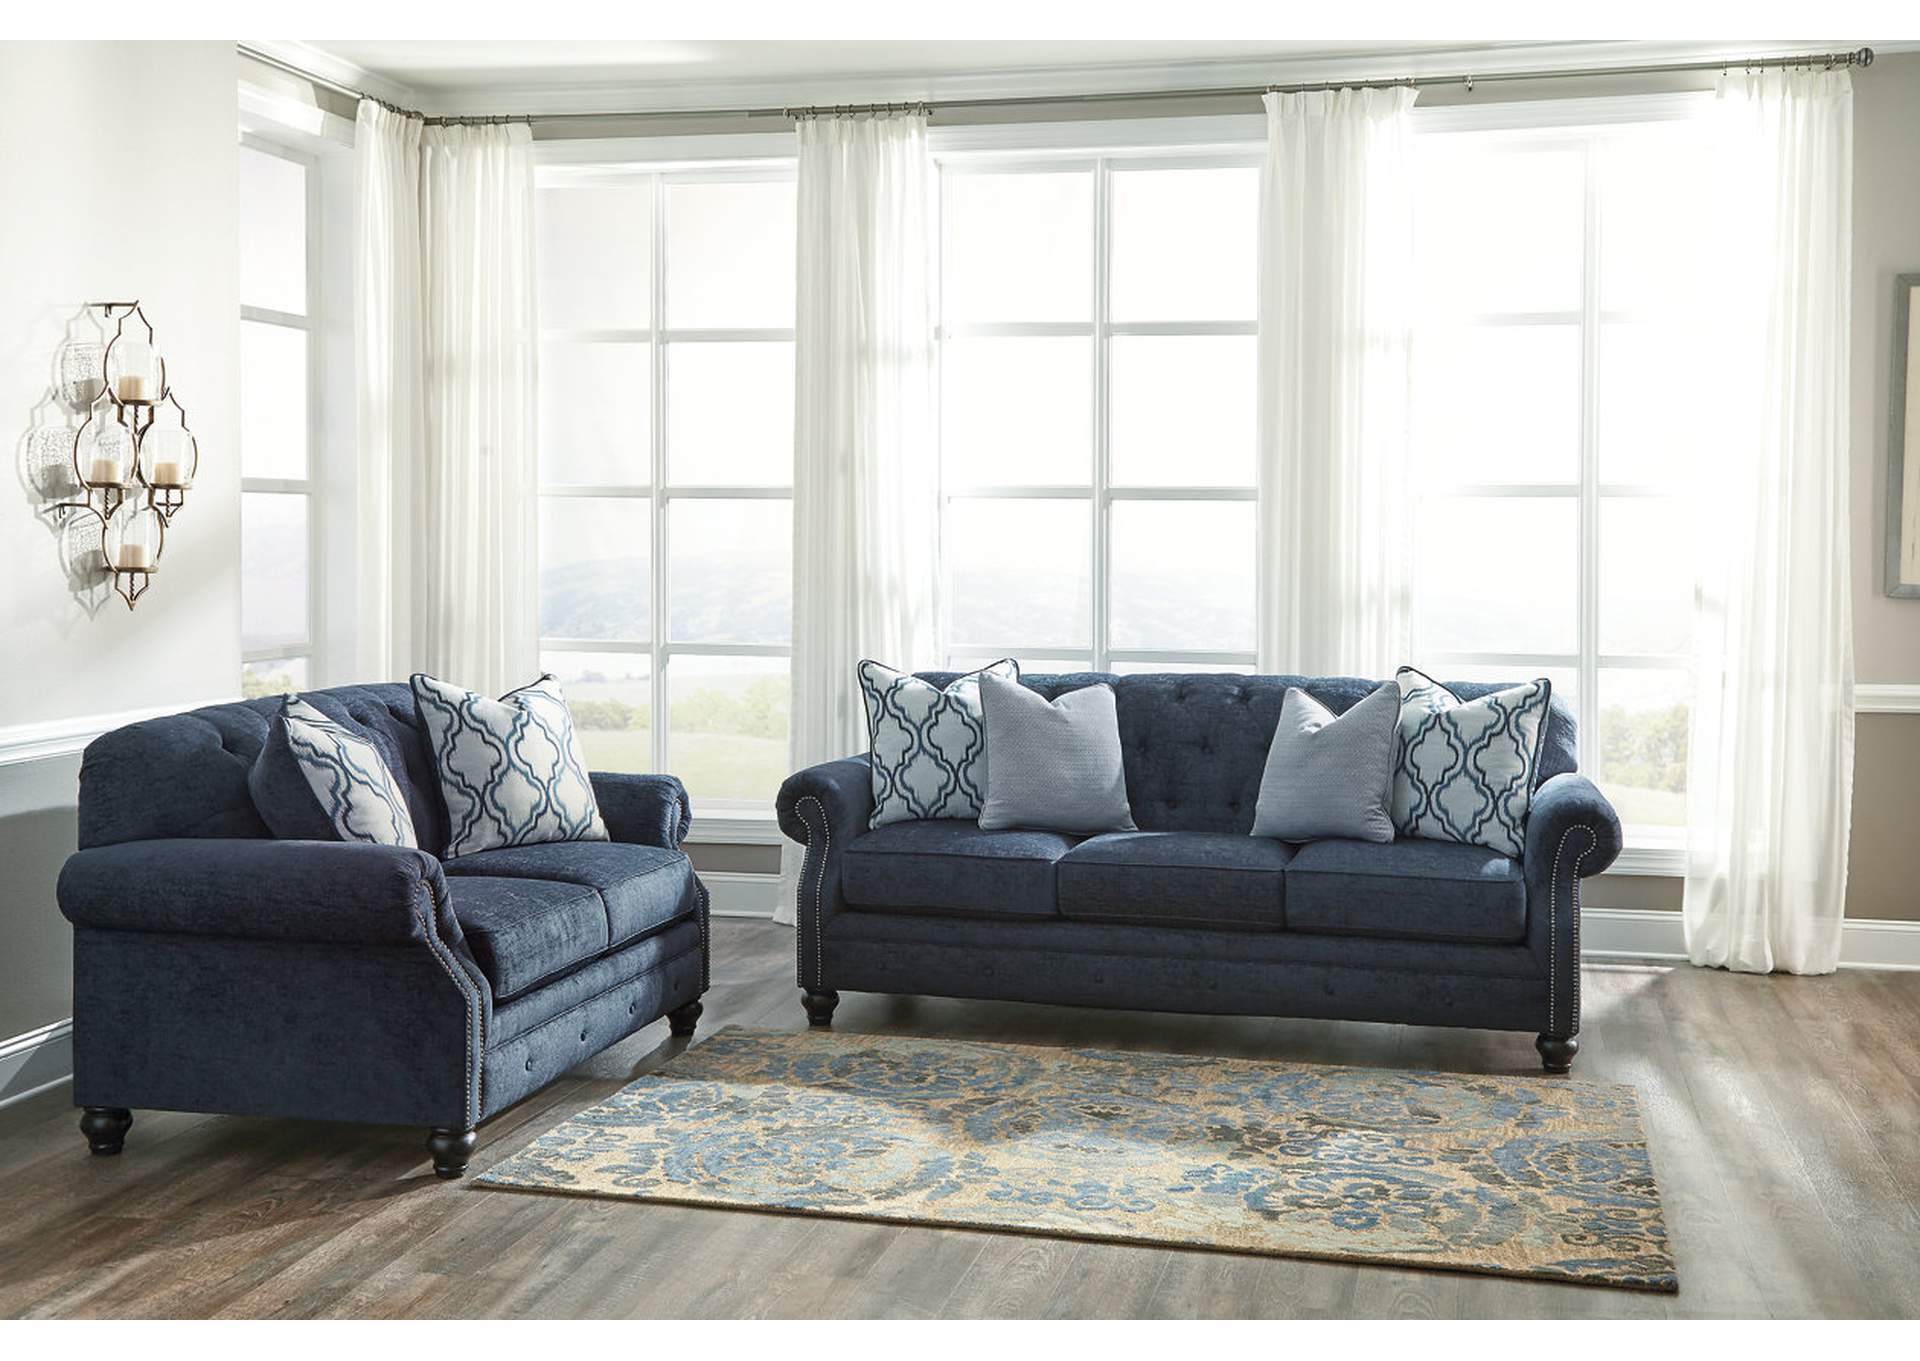 roses flooring and furniture lavernia navy sofa and loveseat. Black Bedroom Furniture Sets. Home Design Ideas